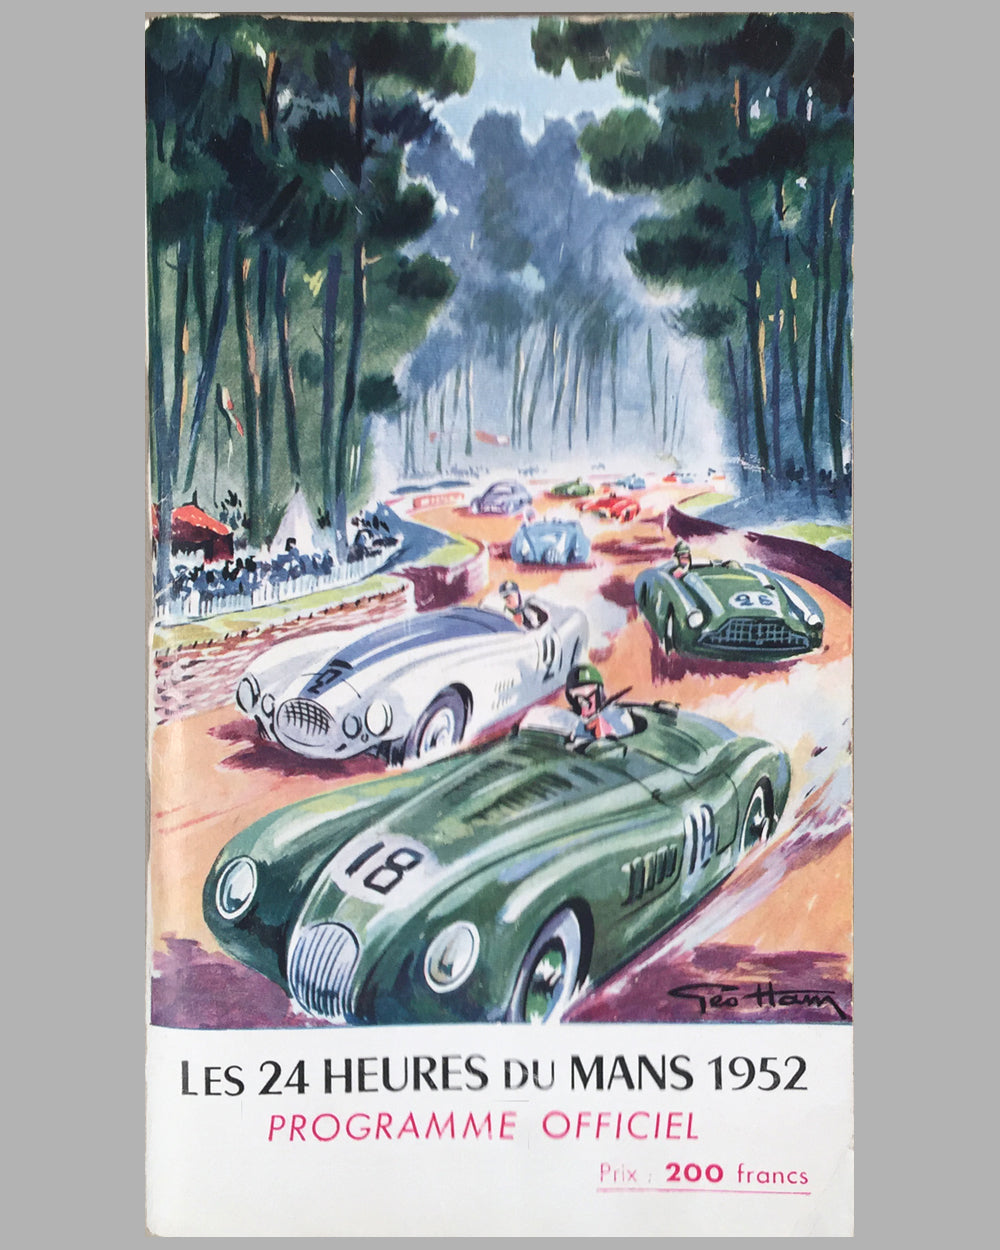 1952 - 24 Heures du Mans official program